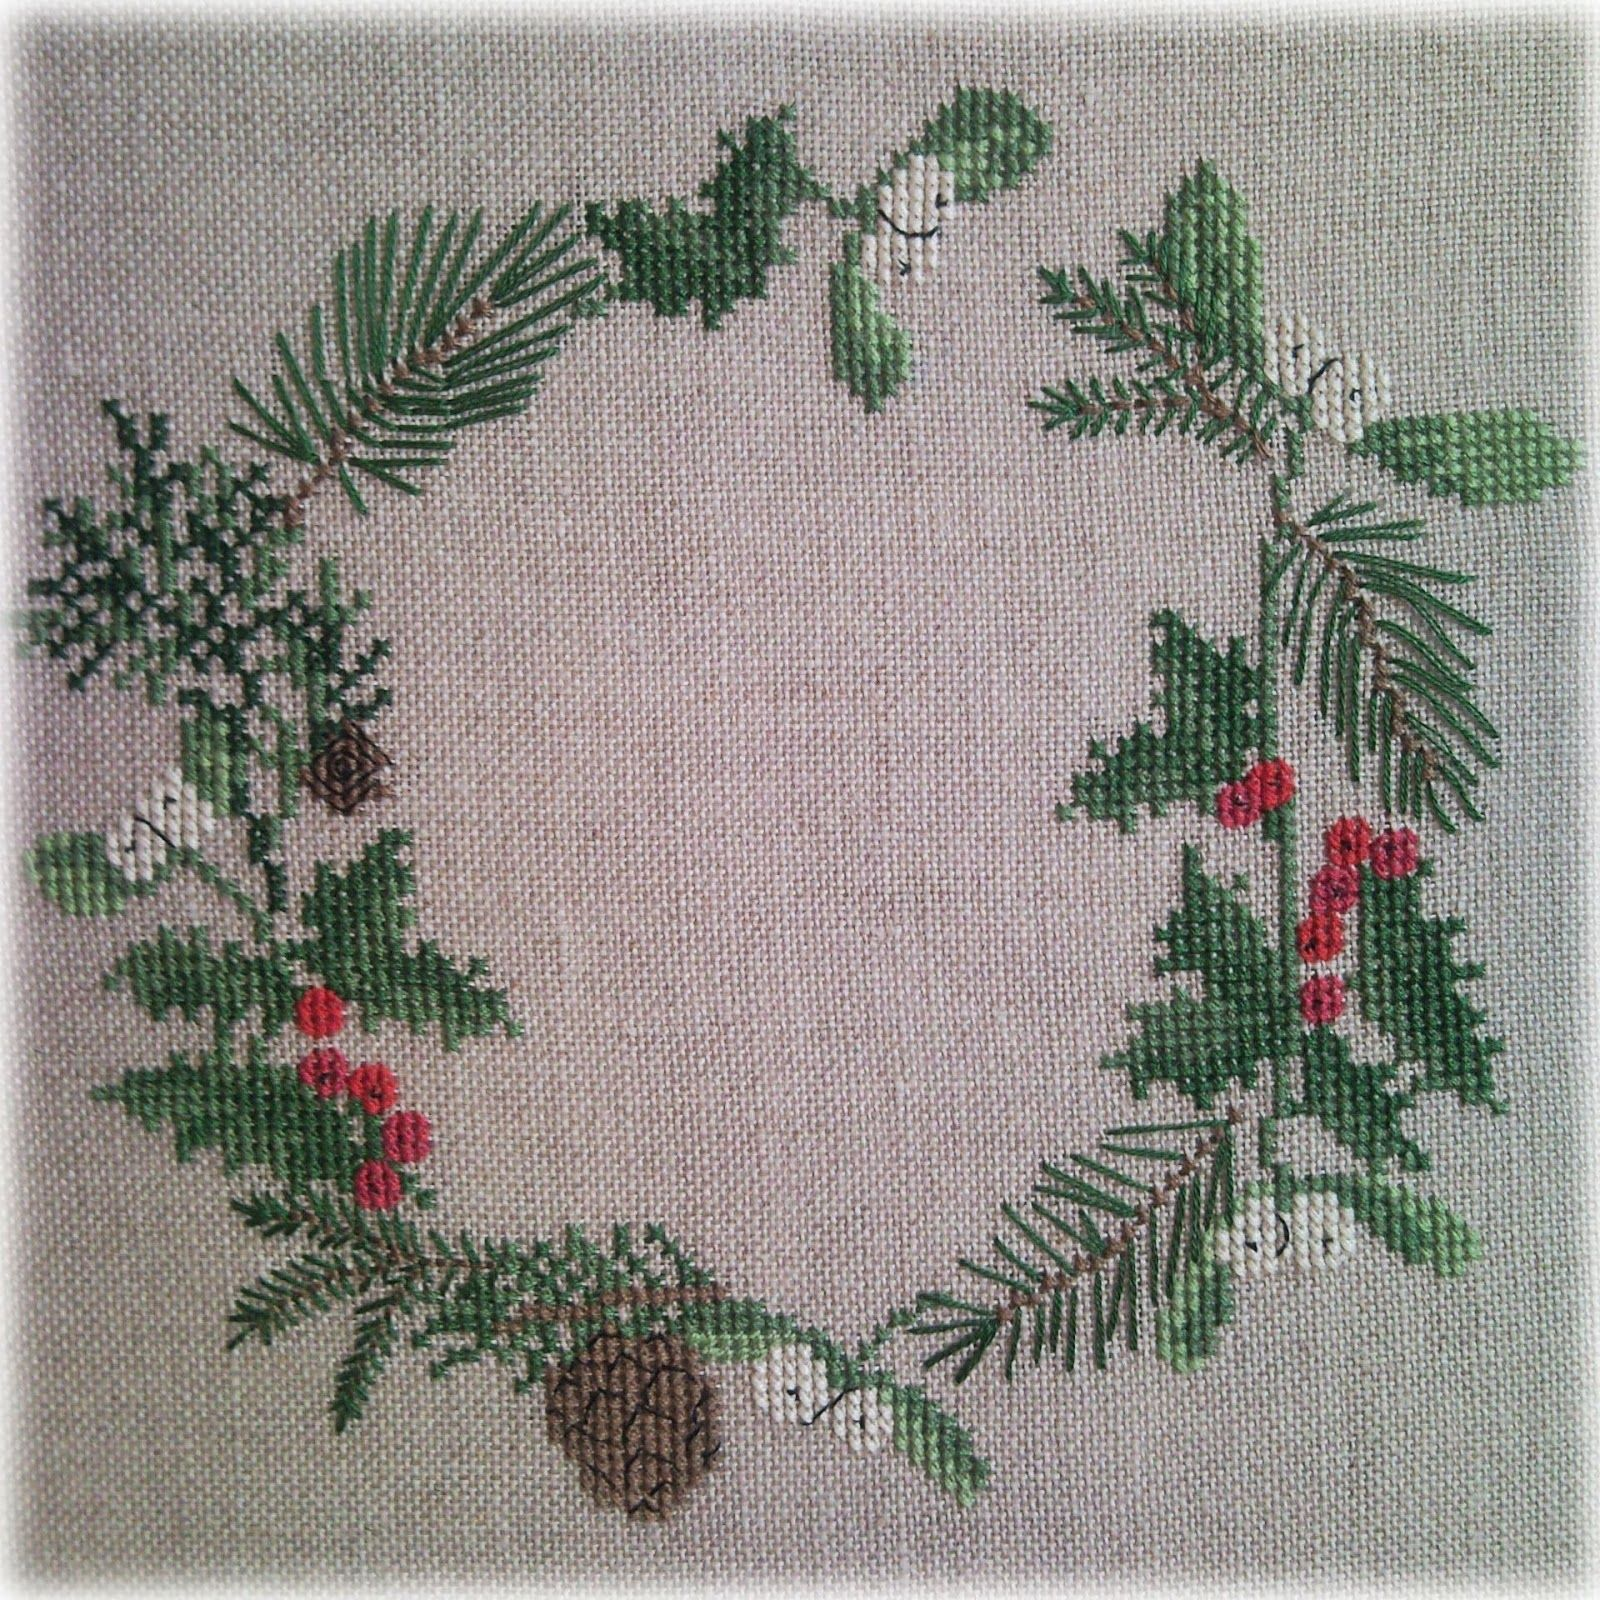 Anyutkin room wreaths from acufactum